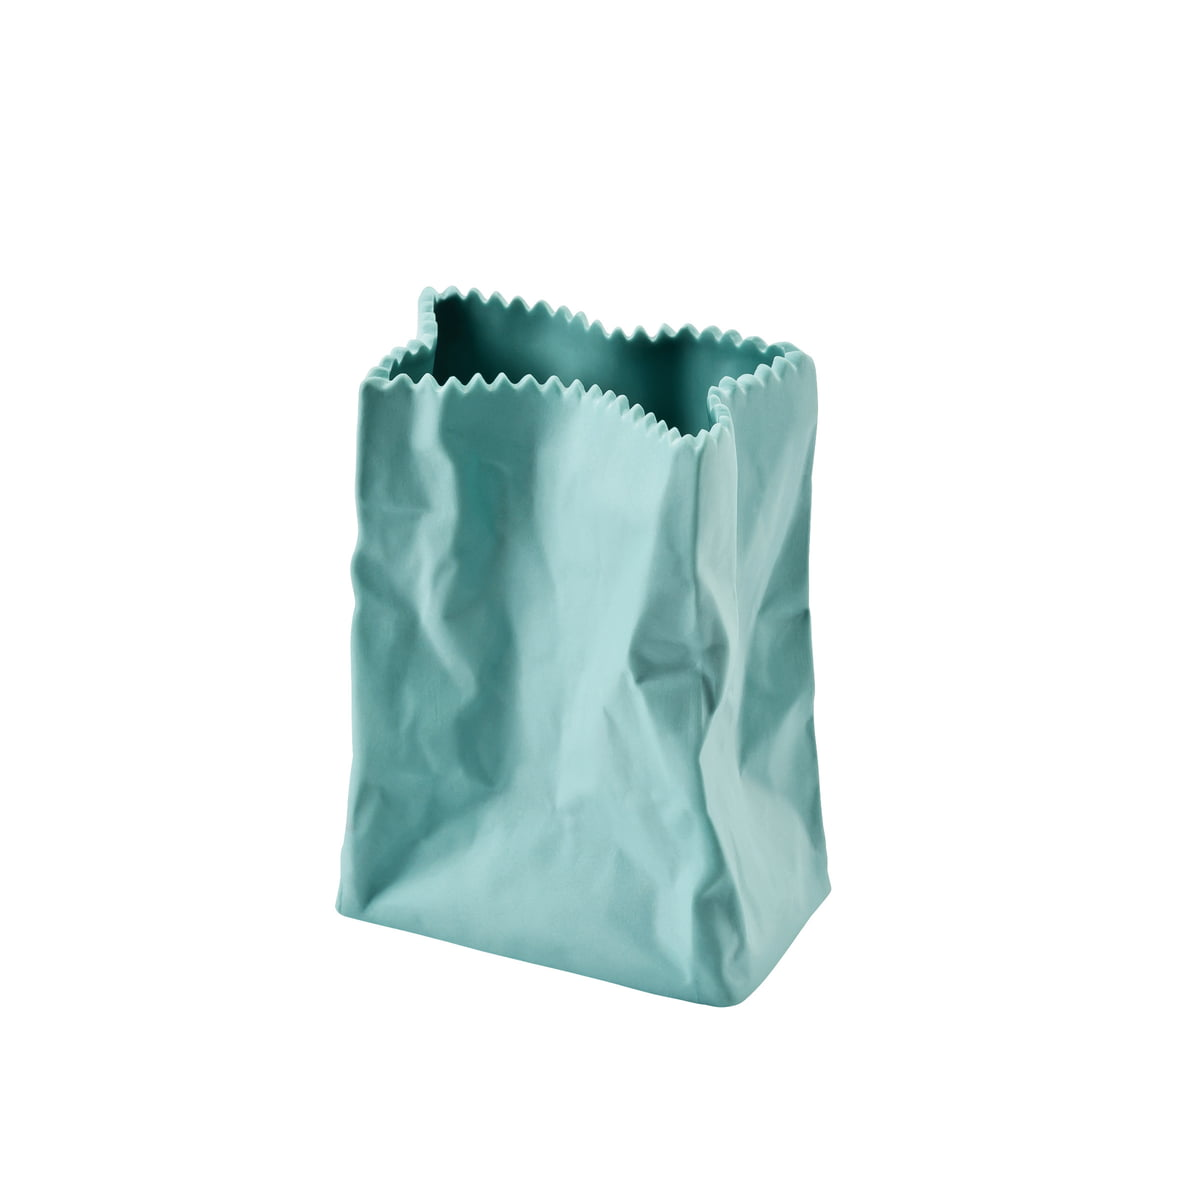 The coloured paper bag vase by rosenthal rosenthal paperbag 10cm mint floridaeventfo Gallery